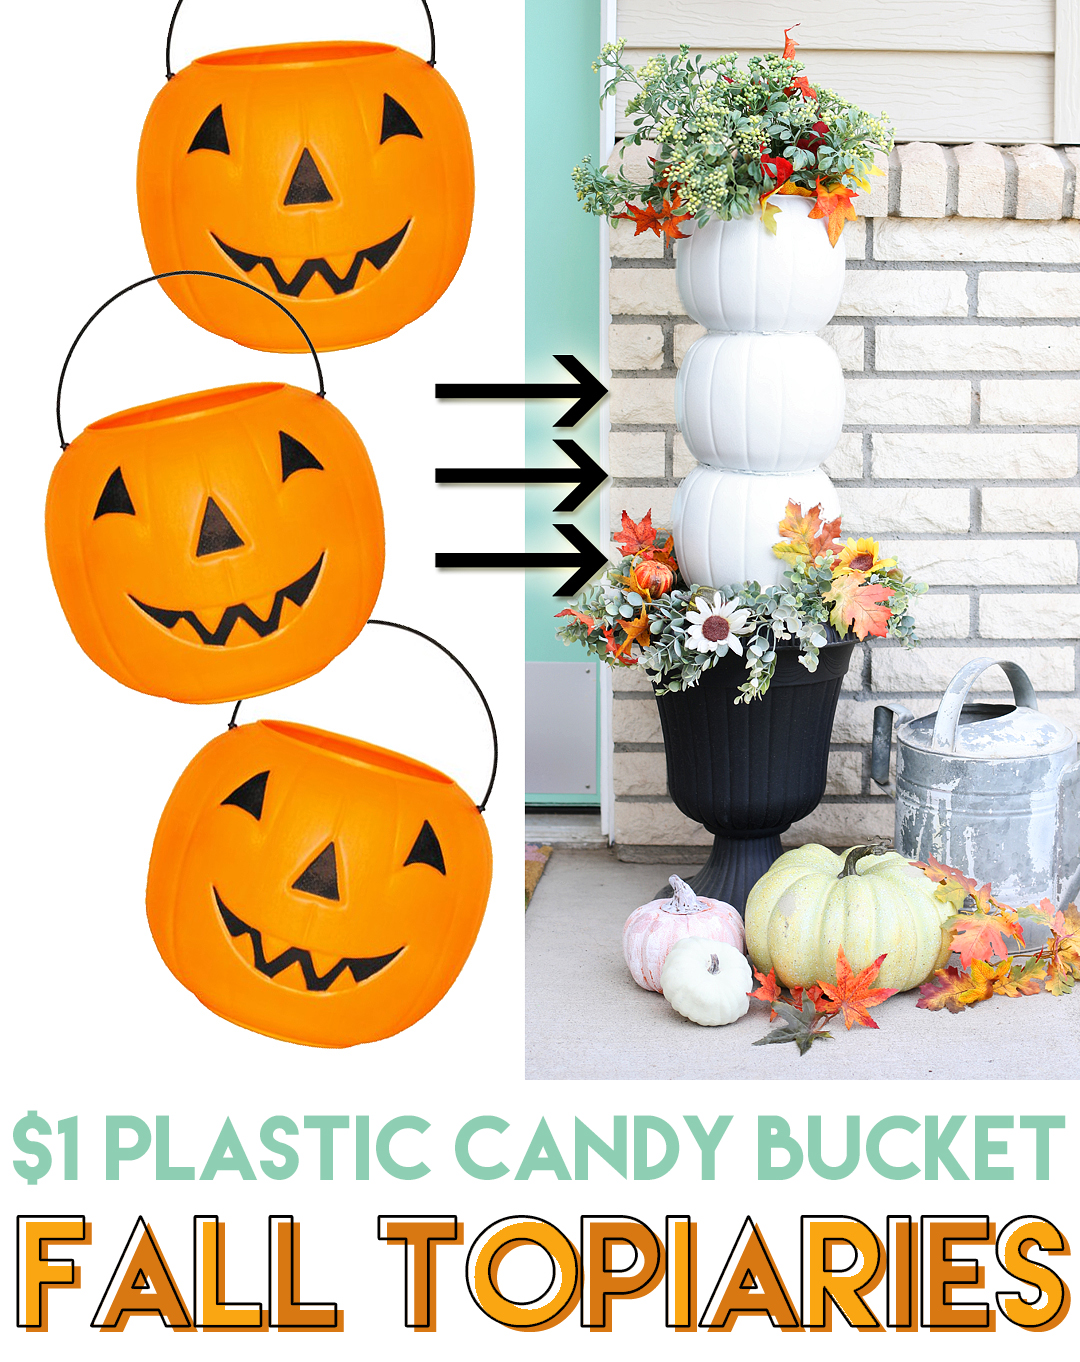 $1 plastic candy bucket fall topiaries